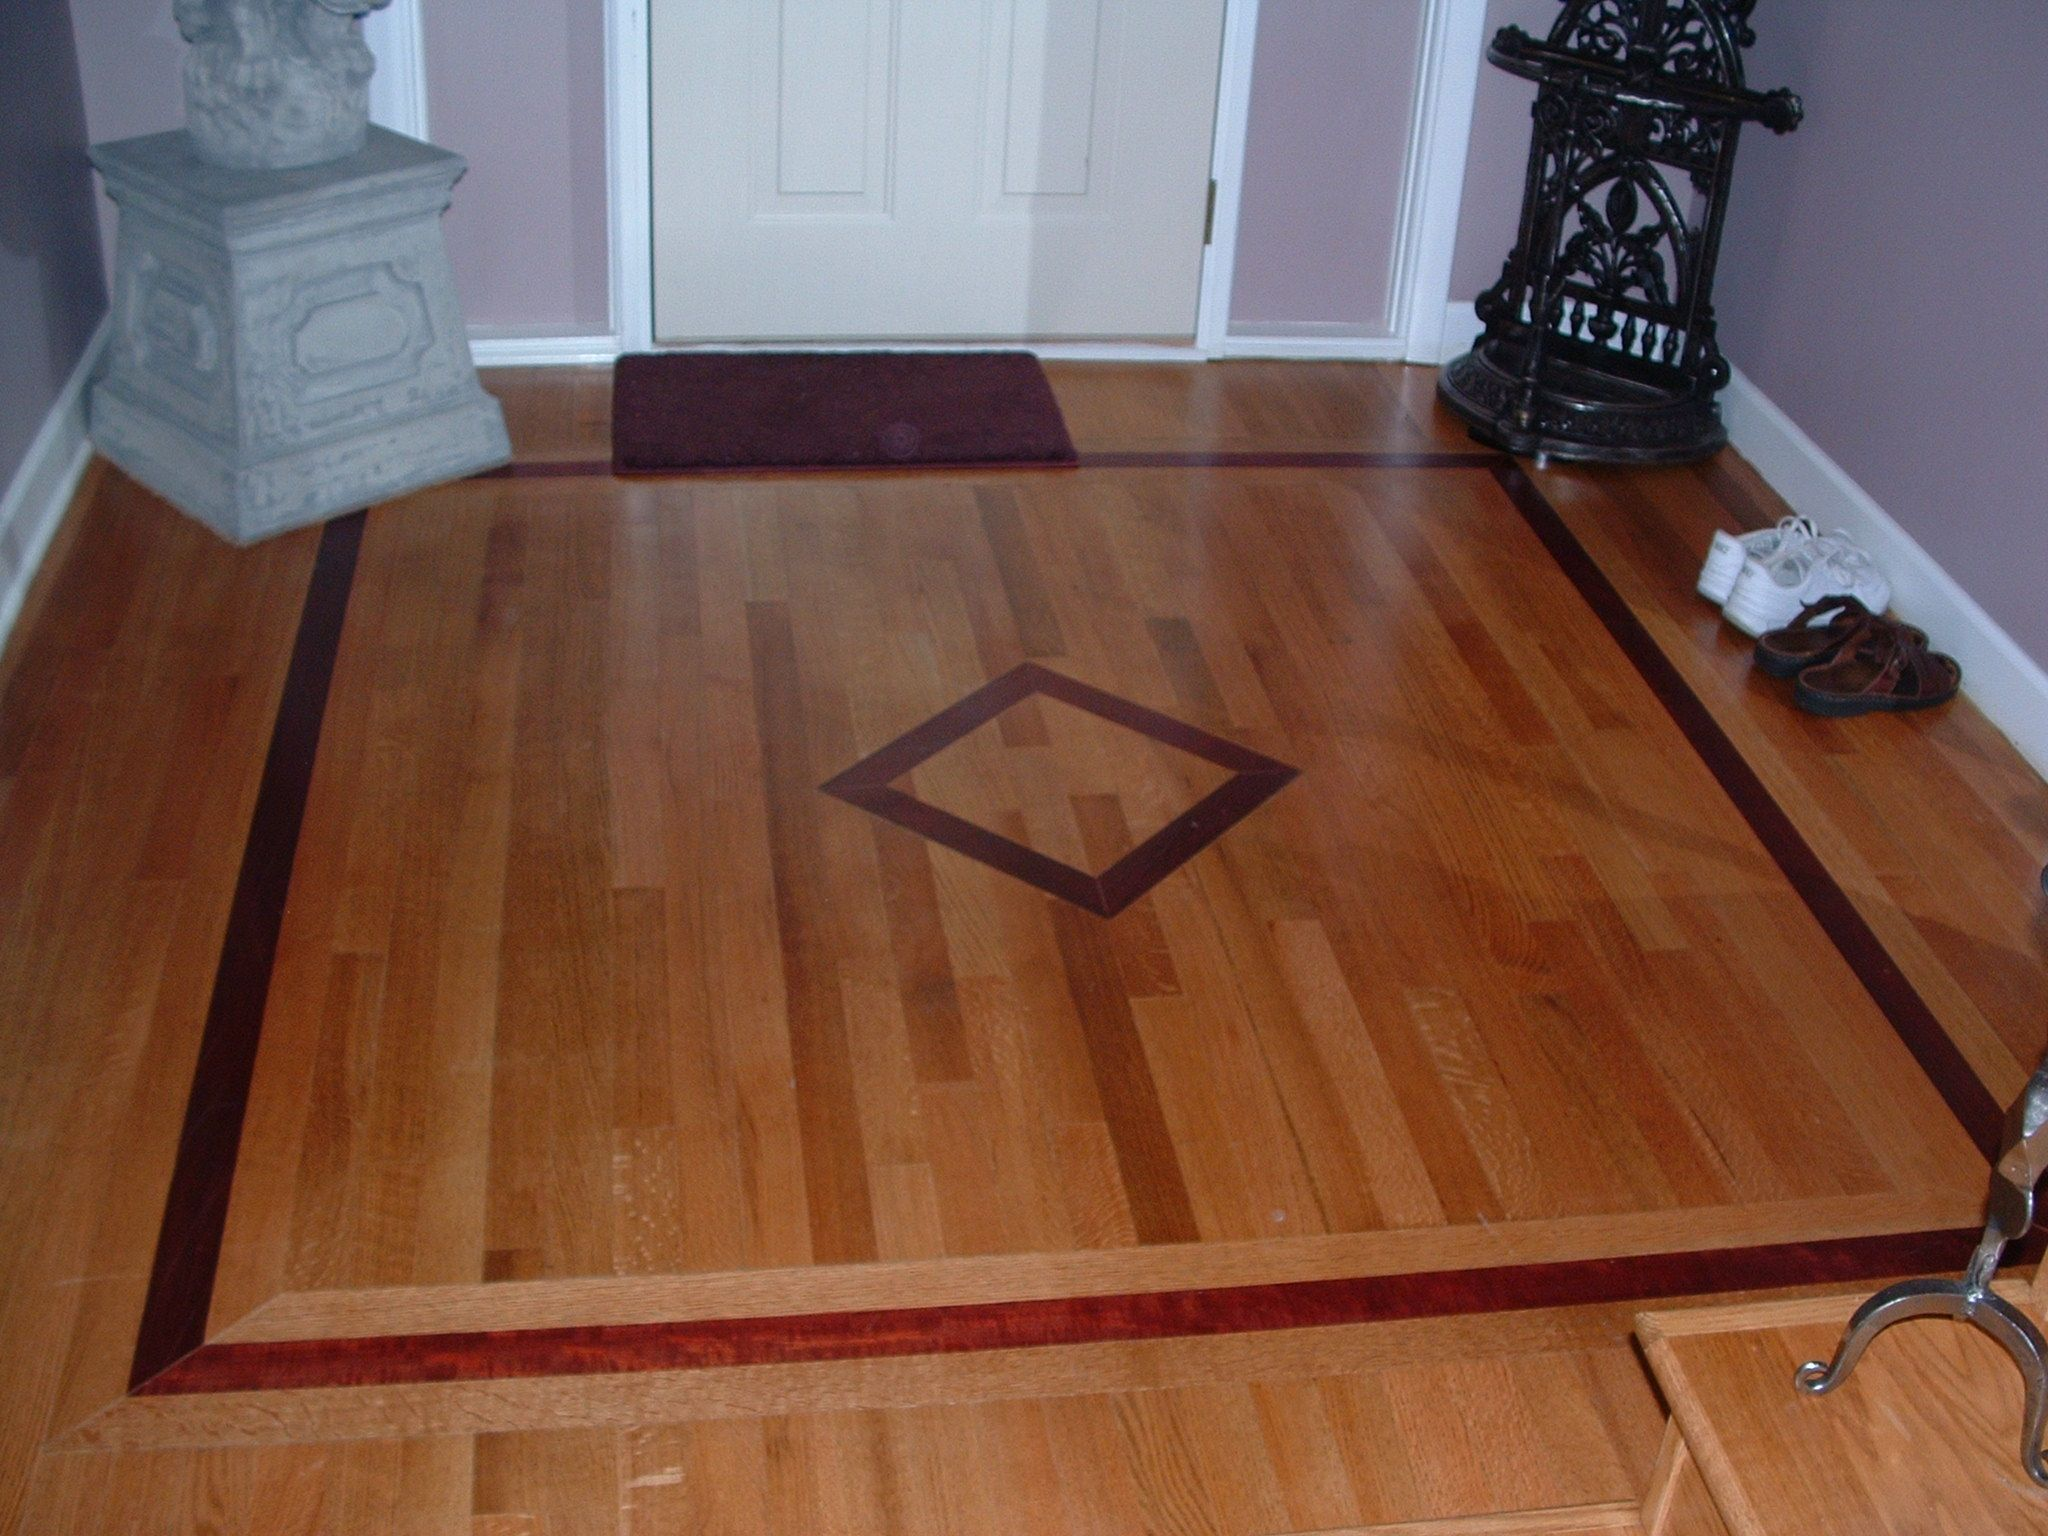 Laying wood floors over ceramic tile httpdreamhomesbyrob laying wood floors over ceramic tile dailygadgetfo Images